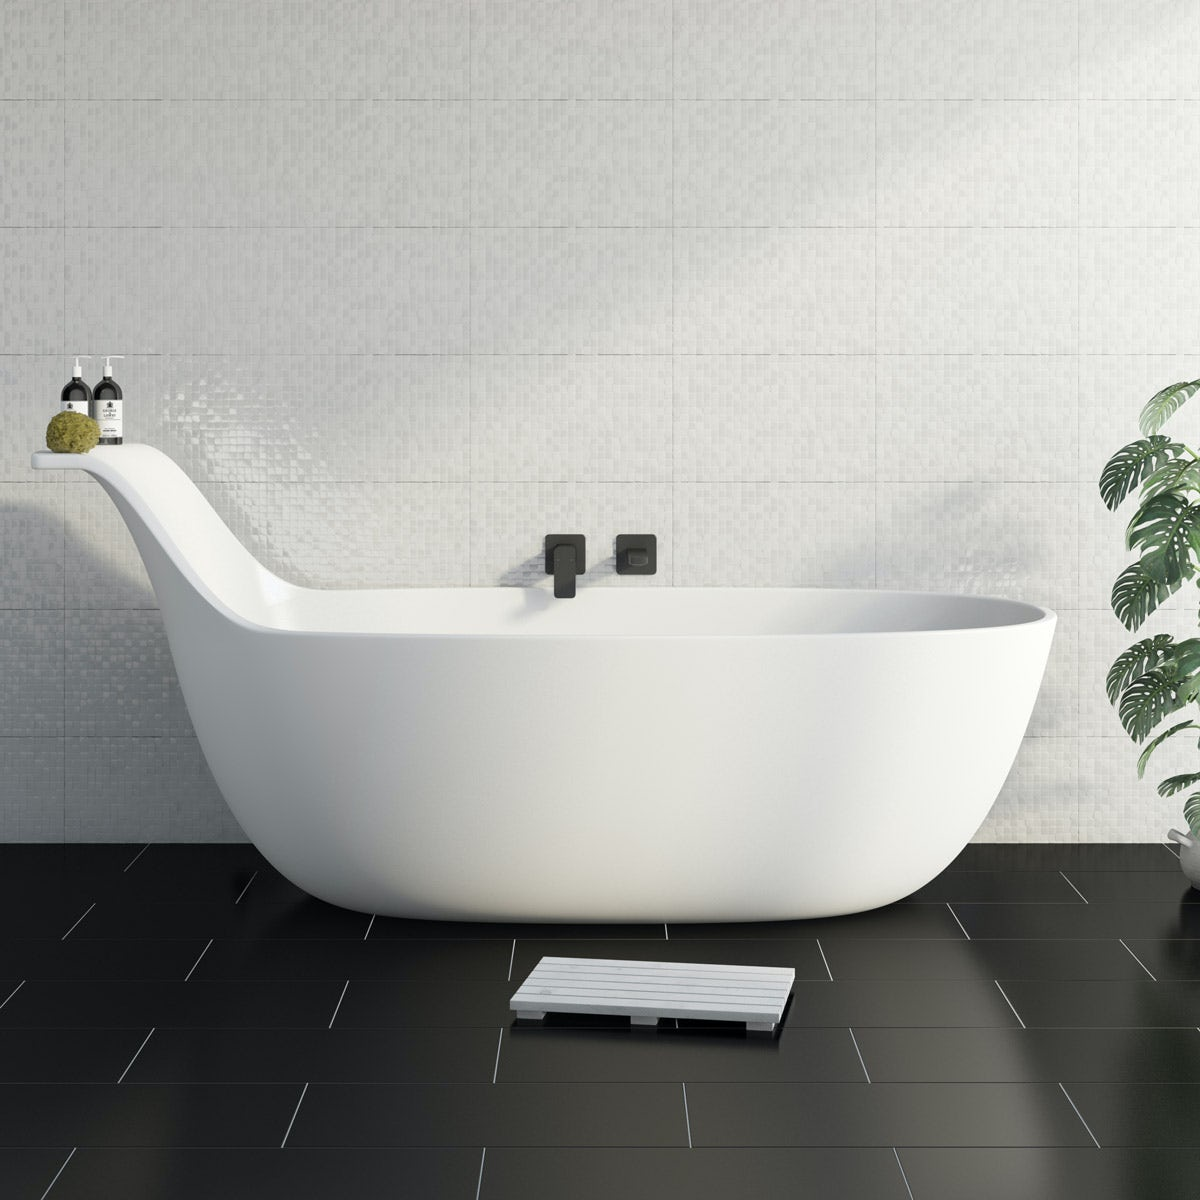 Mode Barocci solid surface freestanding bath